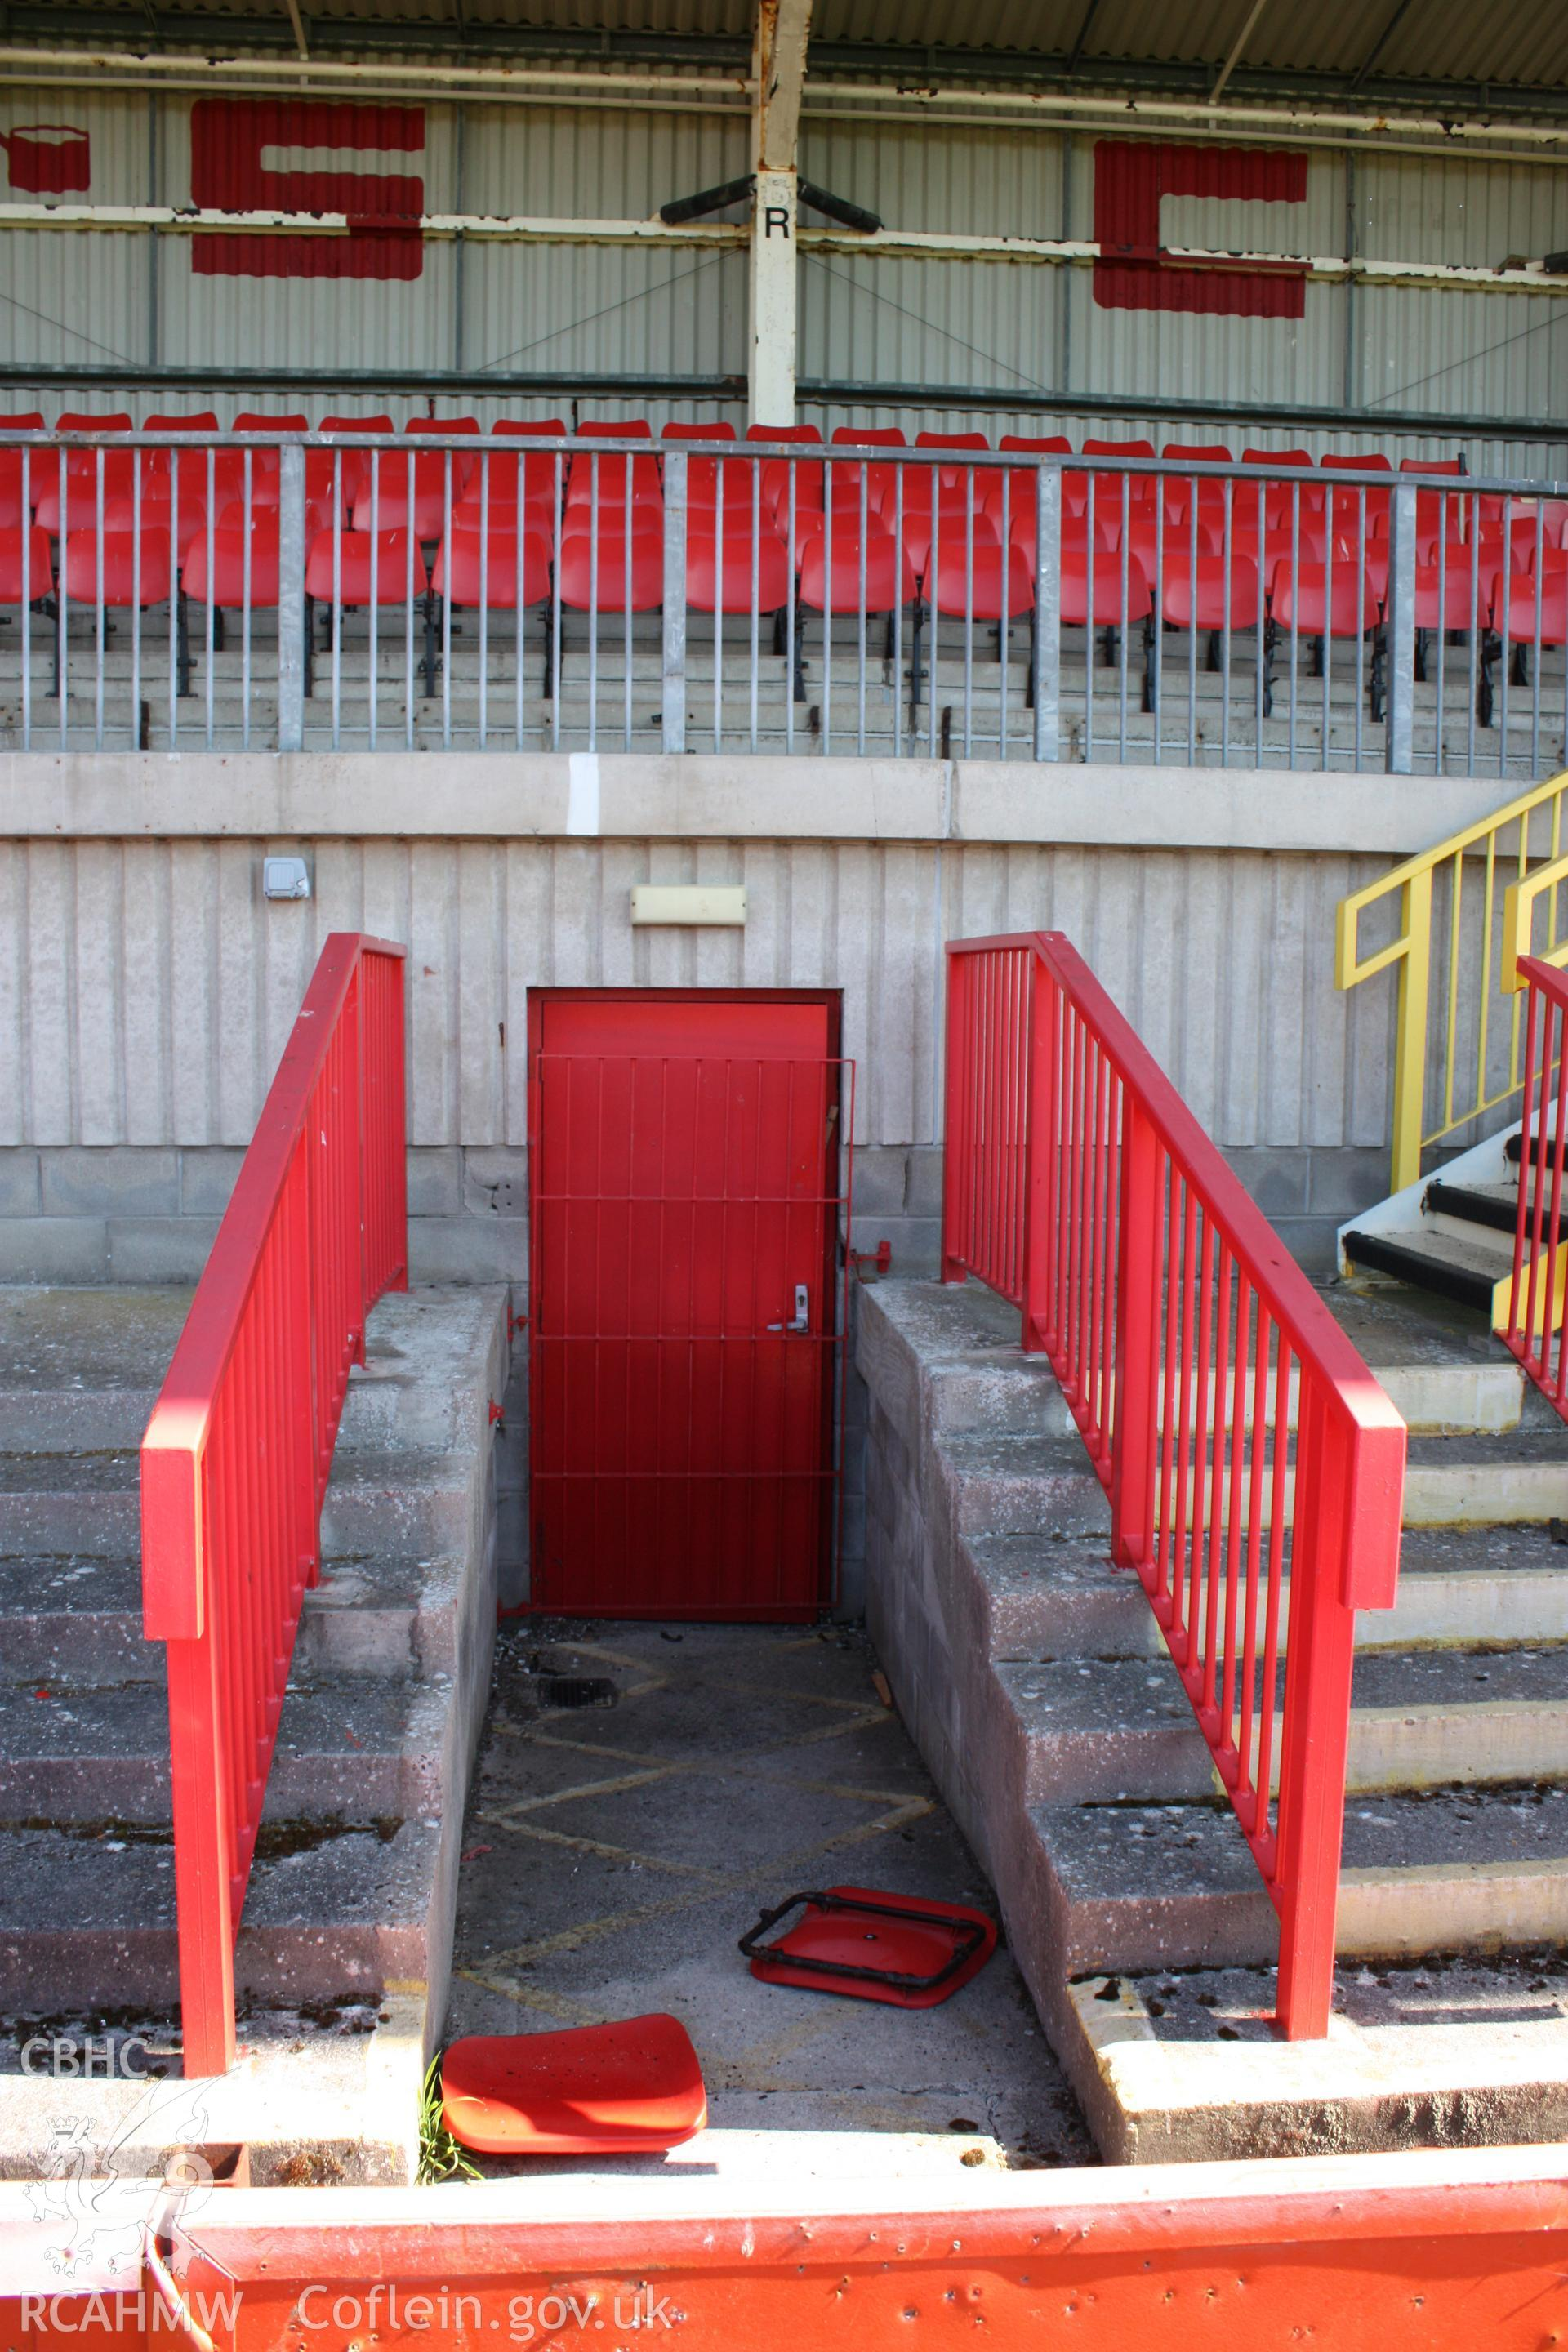 North Stand, central entrance